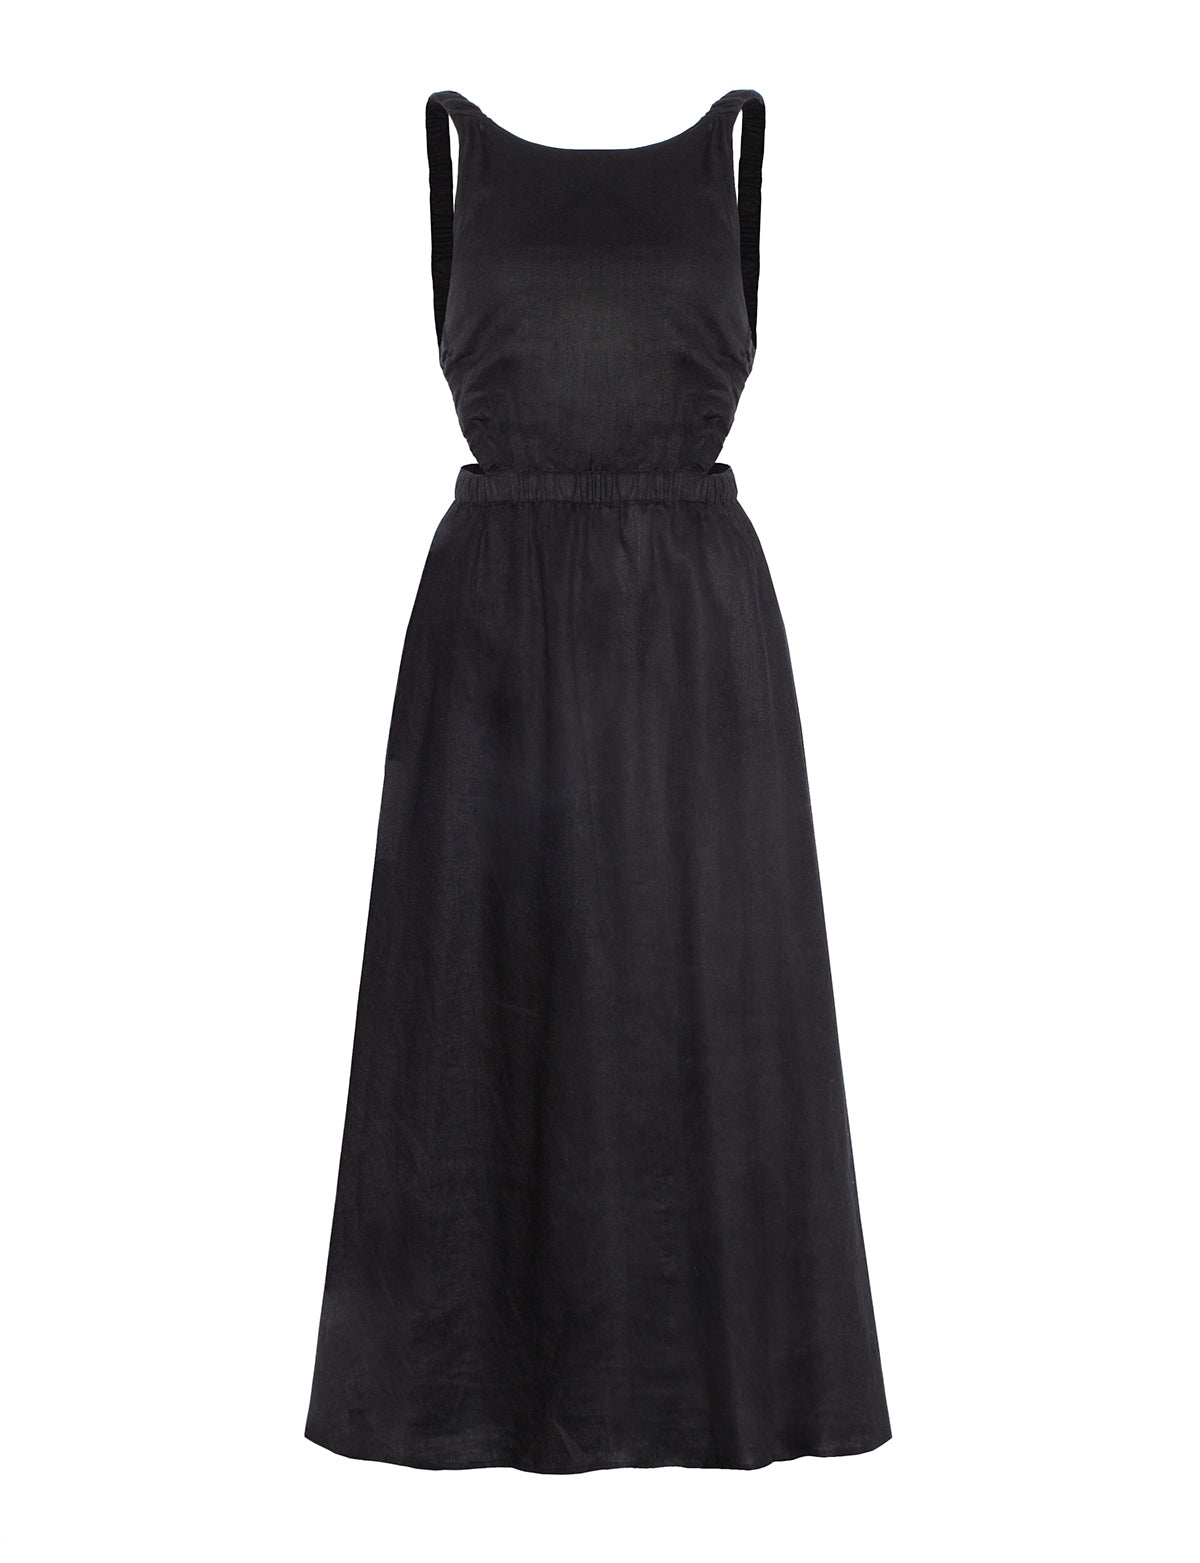 beatrice black linen dress